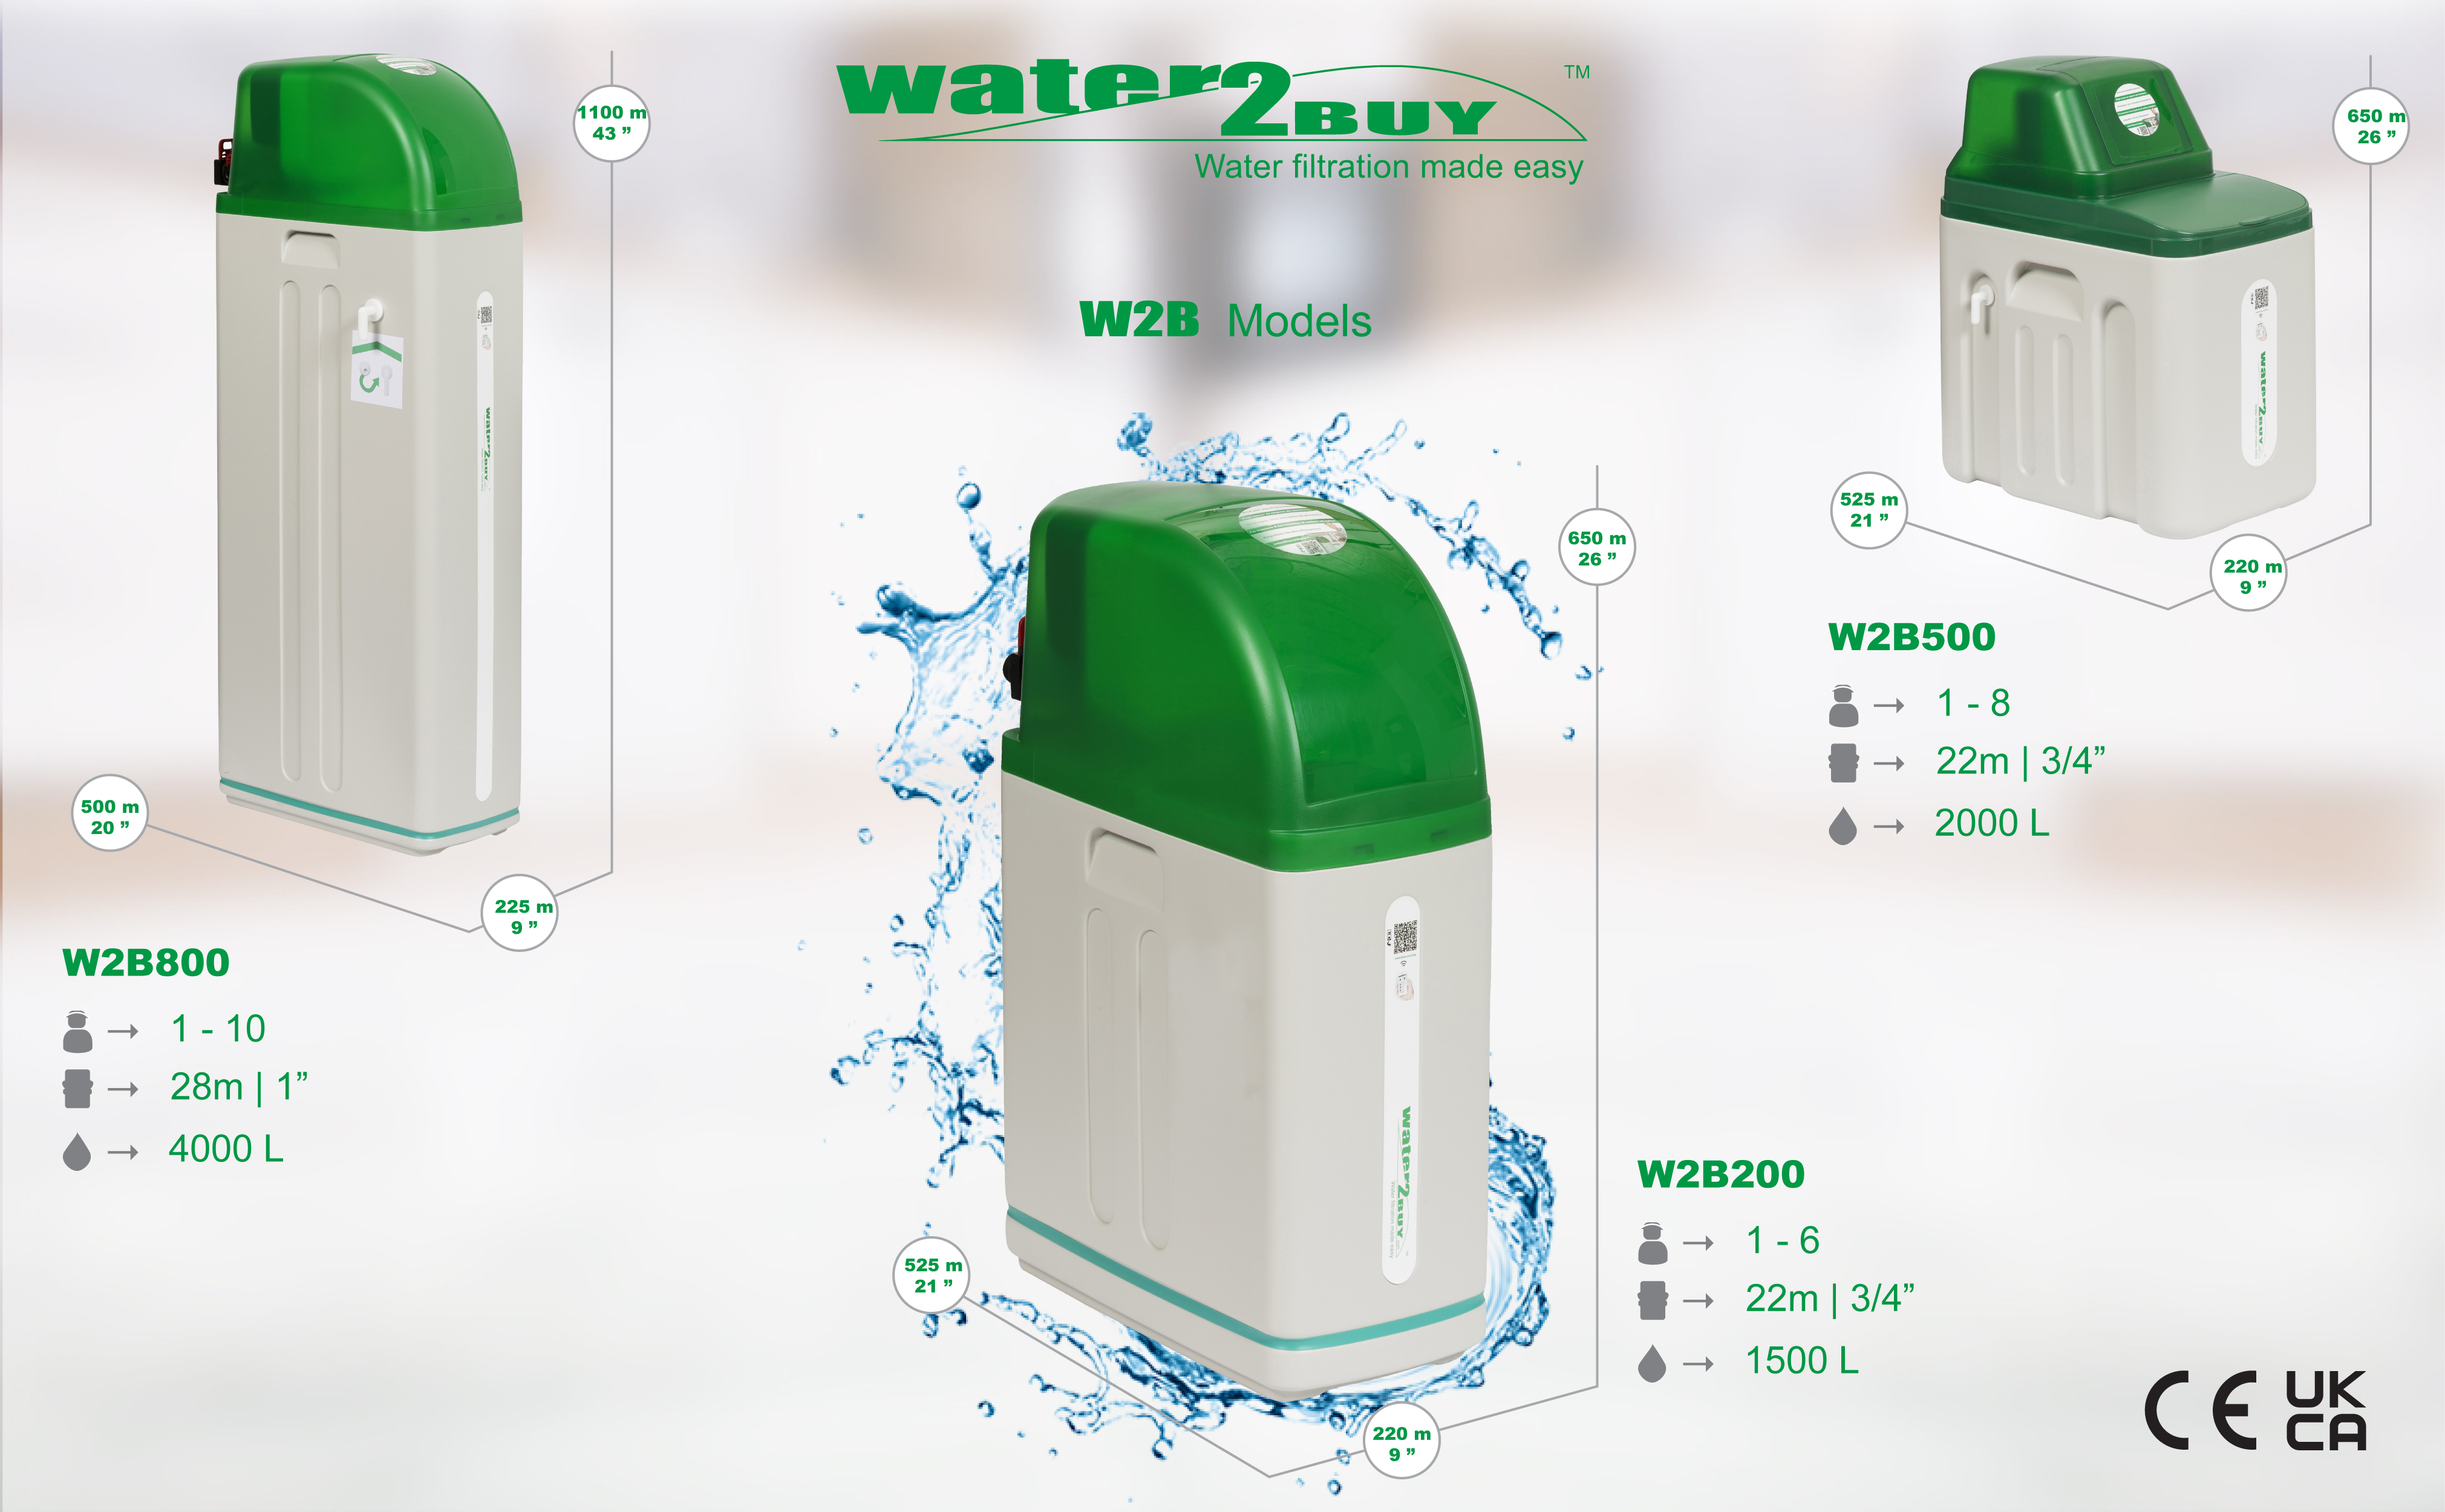 What are the differences between Water softener models?